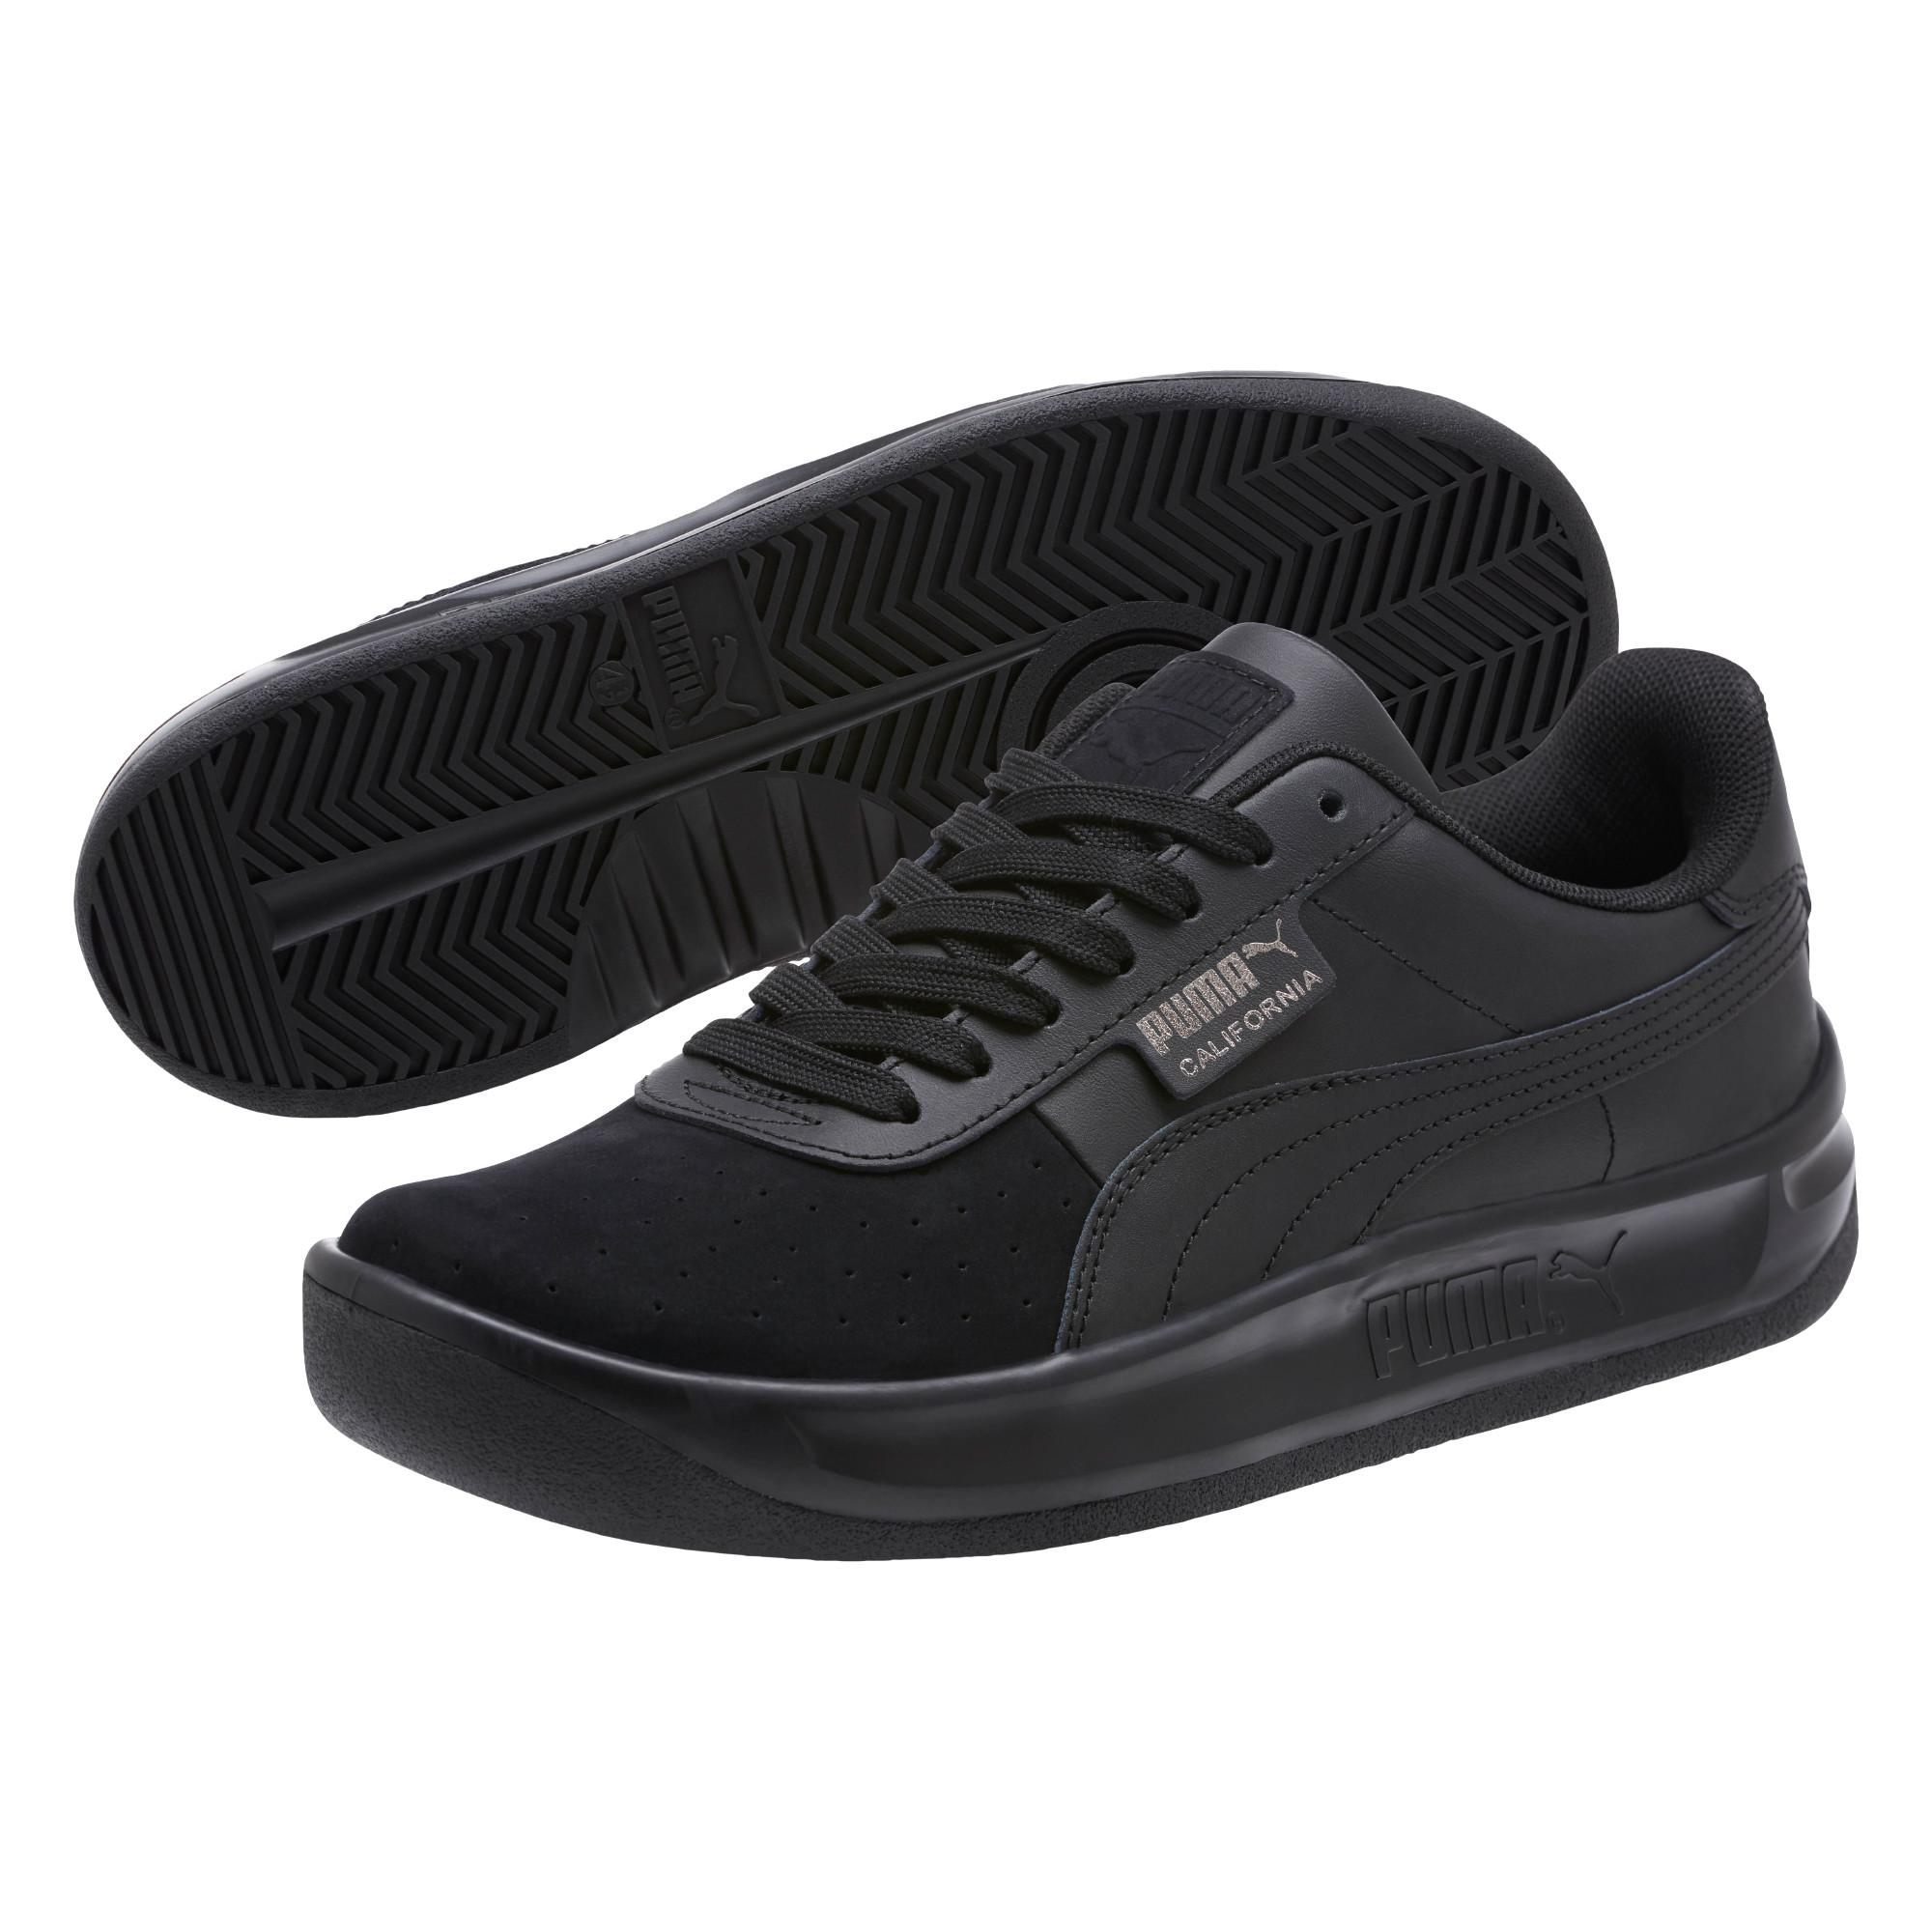 dc20a92bef1dd3 Lyst - PUMA California Exotic Women s Sneakers in Black